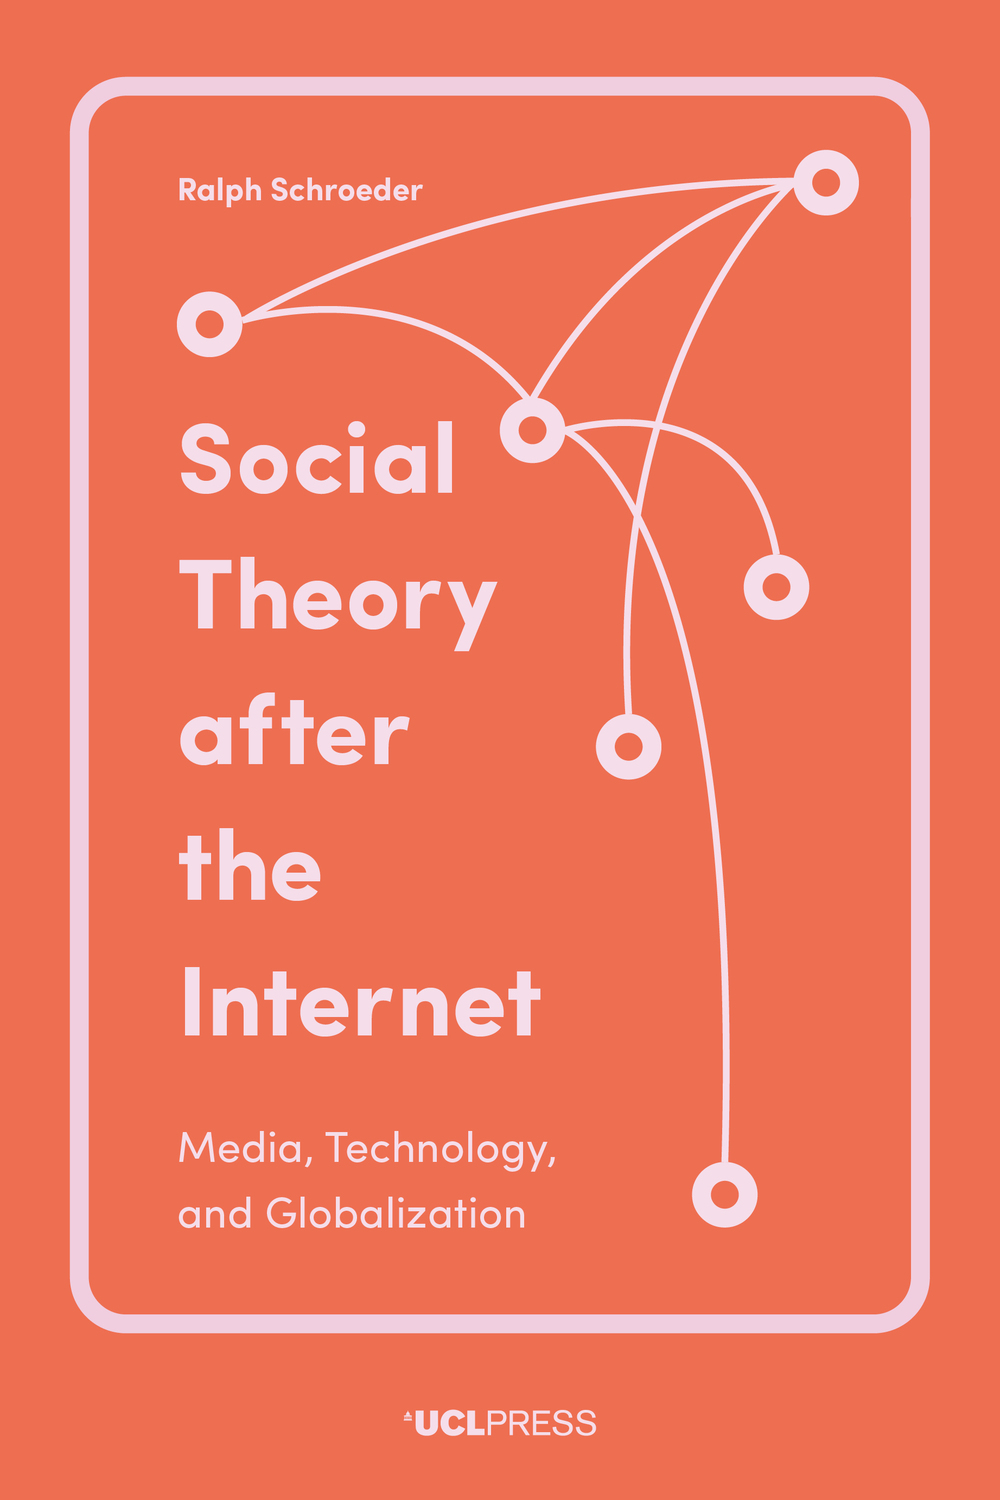 Social Theory after the Internet